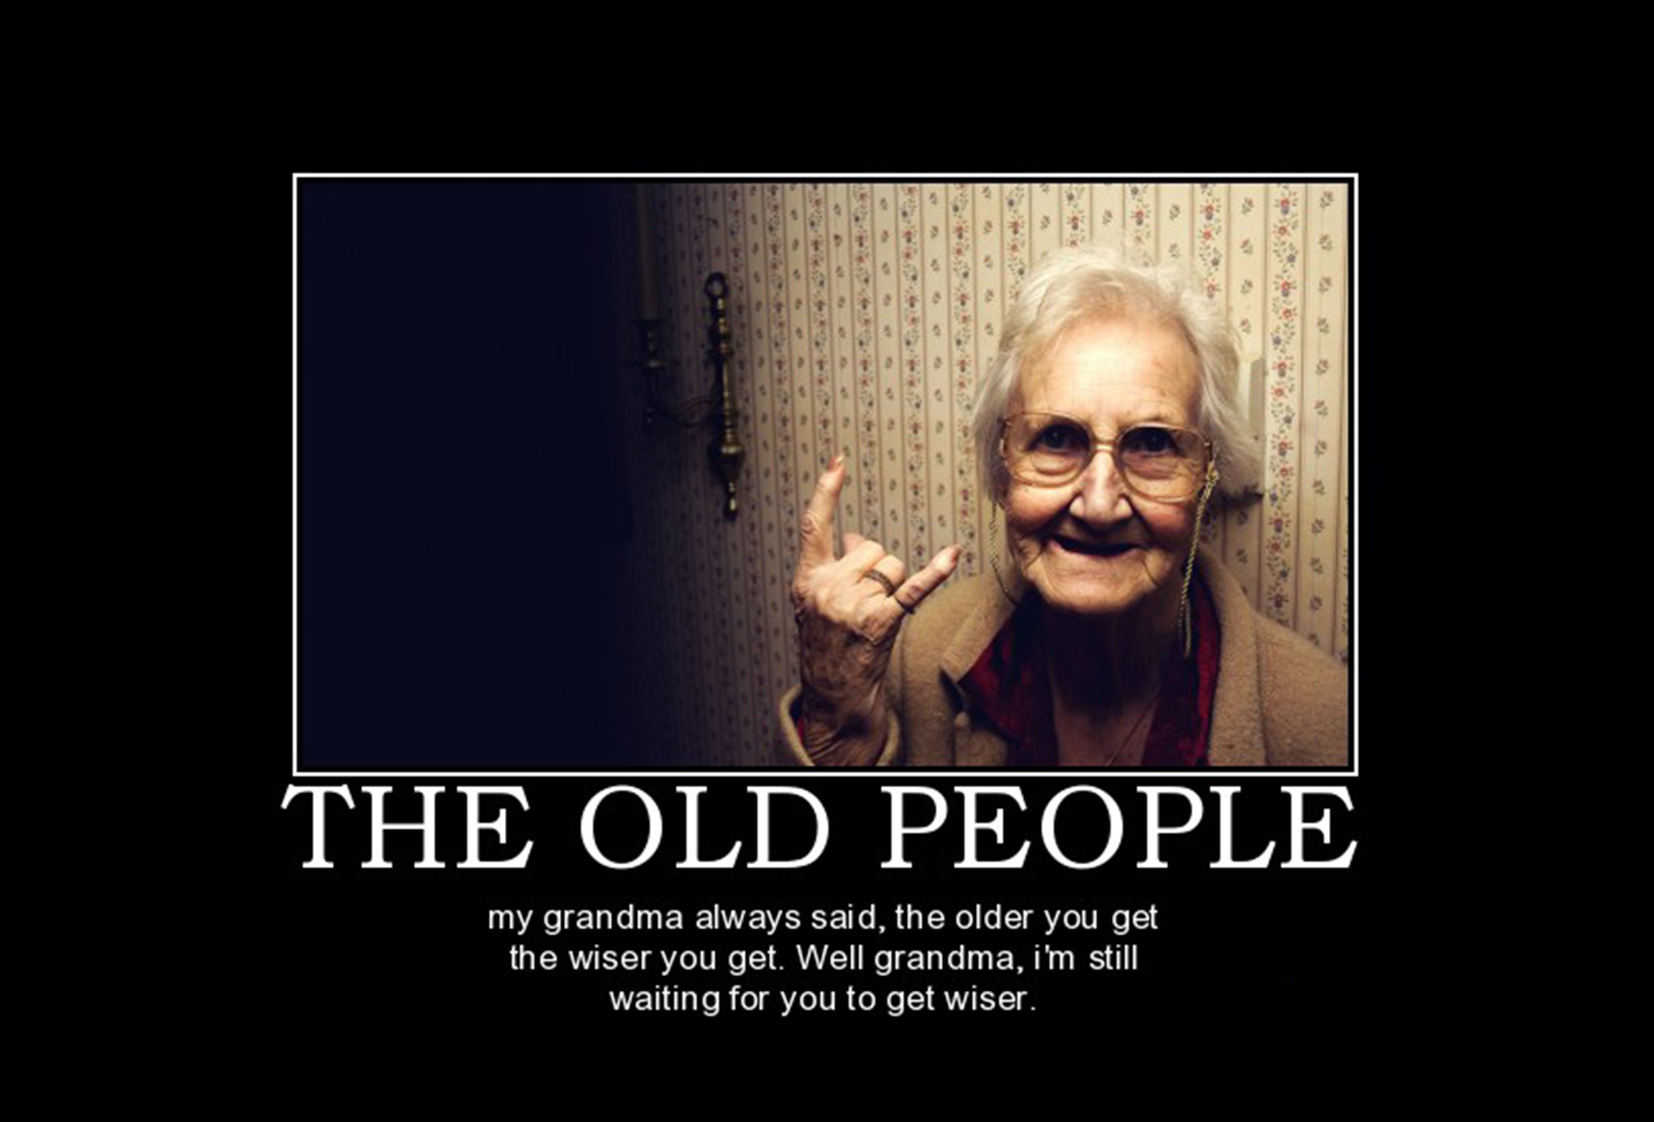 the-old-people-the-old-people-demotivational-poster-1273376612